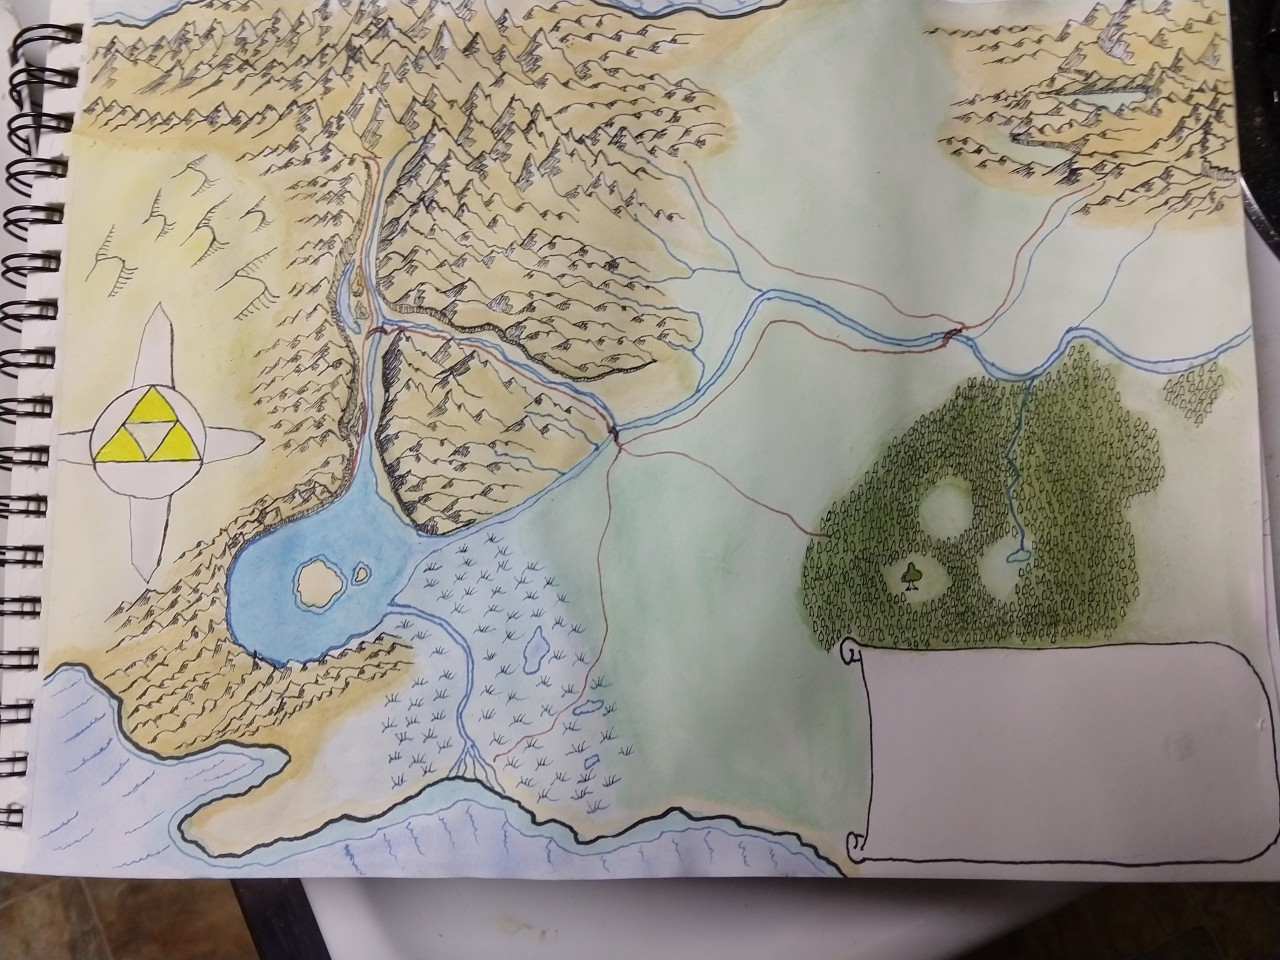 Legend of Zelda hand drawn map coloredx.jpg